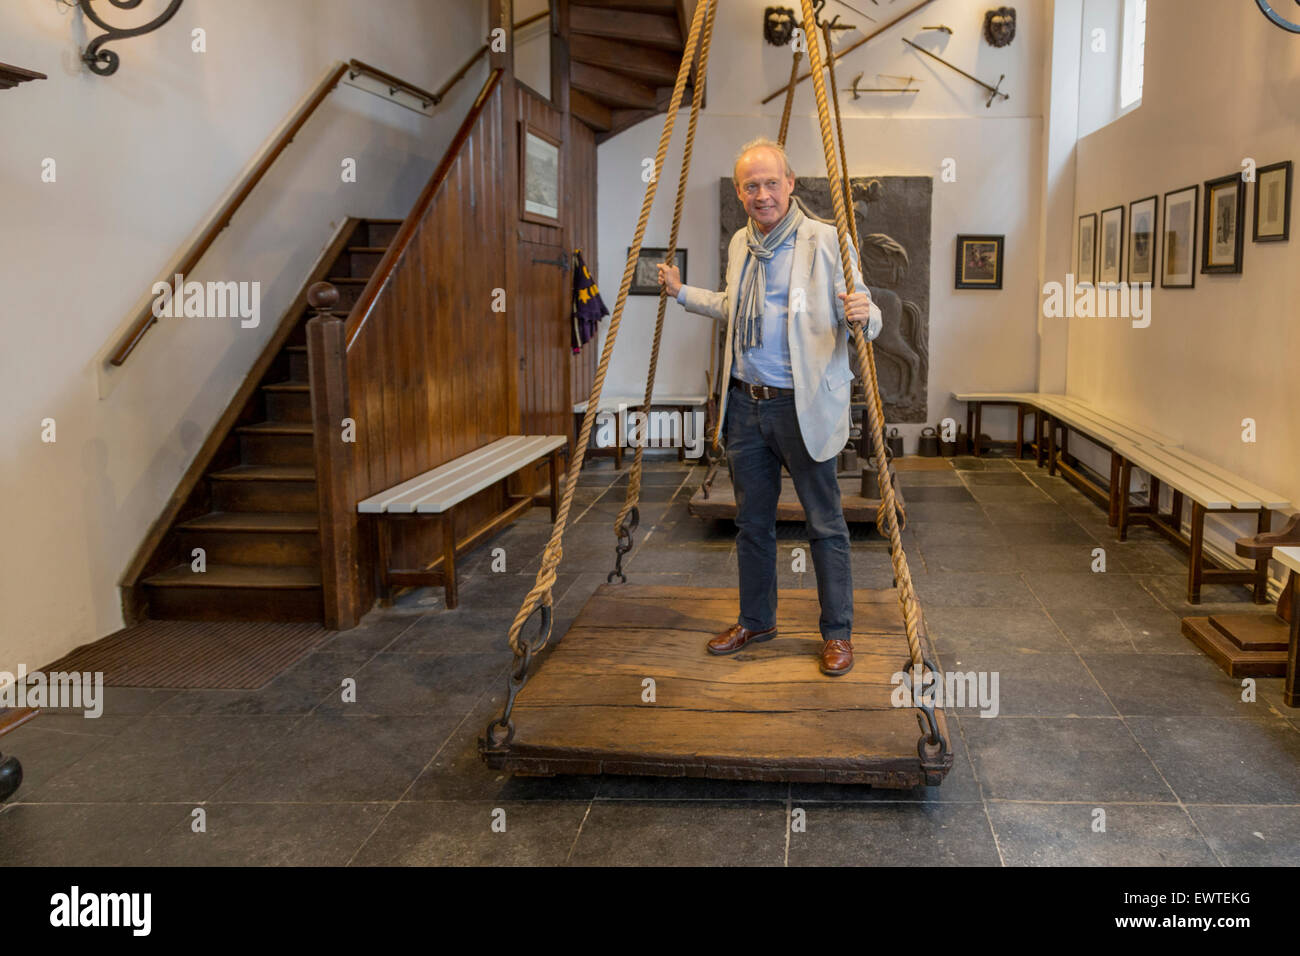 Interior of the Witches' Weigh House (Heksenwaag) with a man being weighed on the scales, in Oudewater, Utrecht, - Stock Image